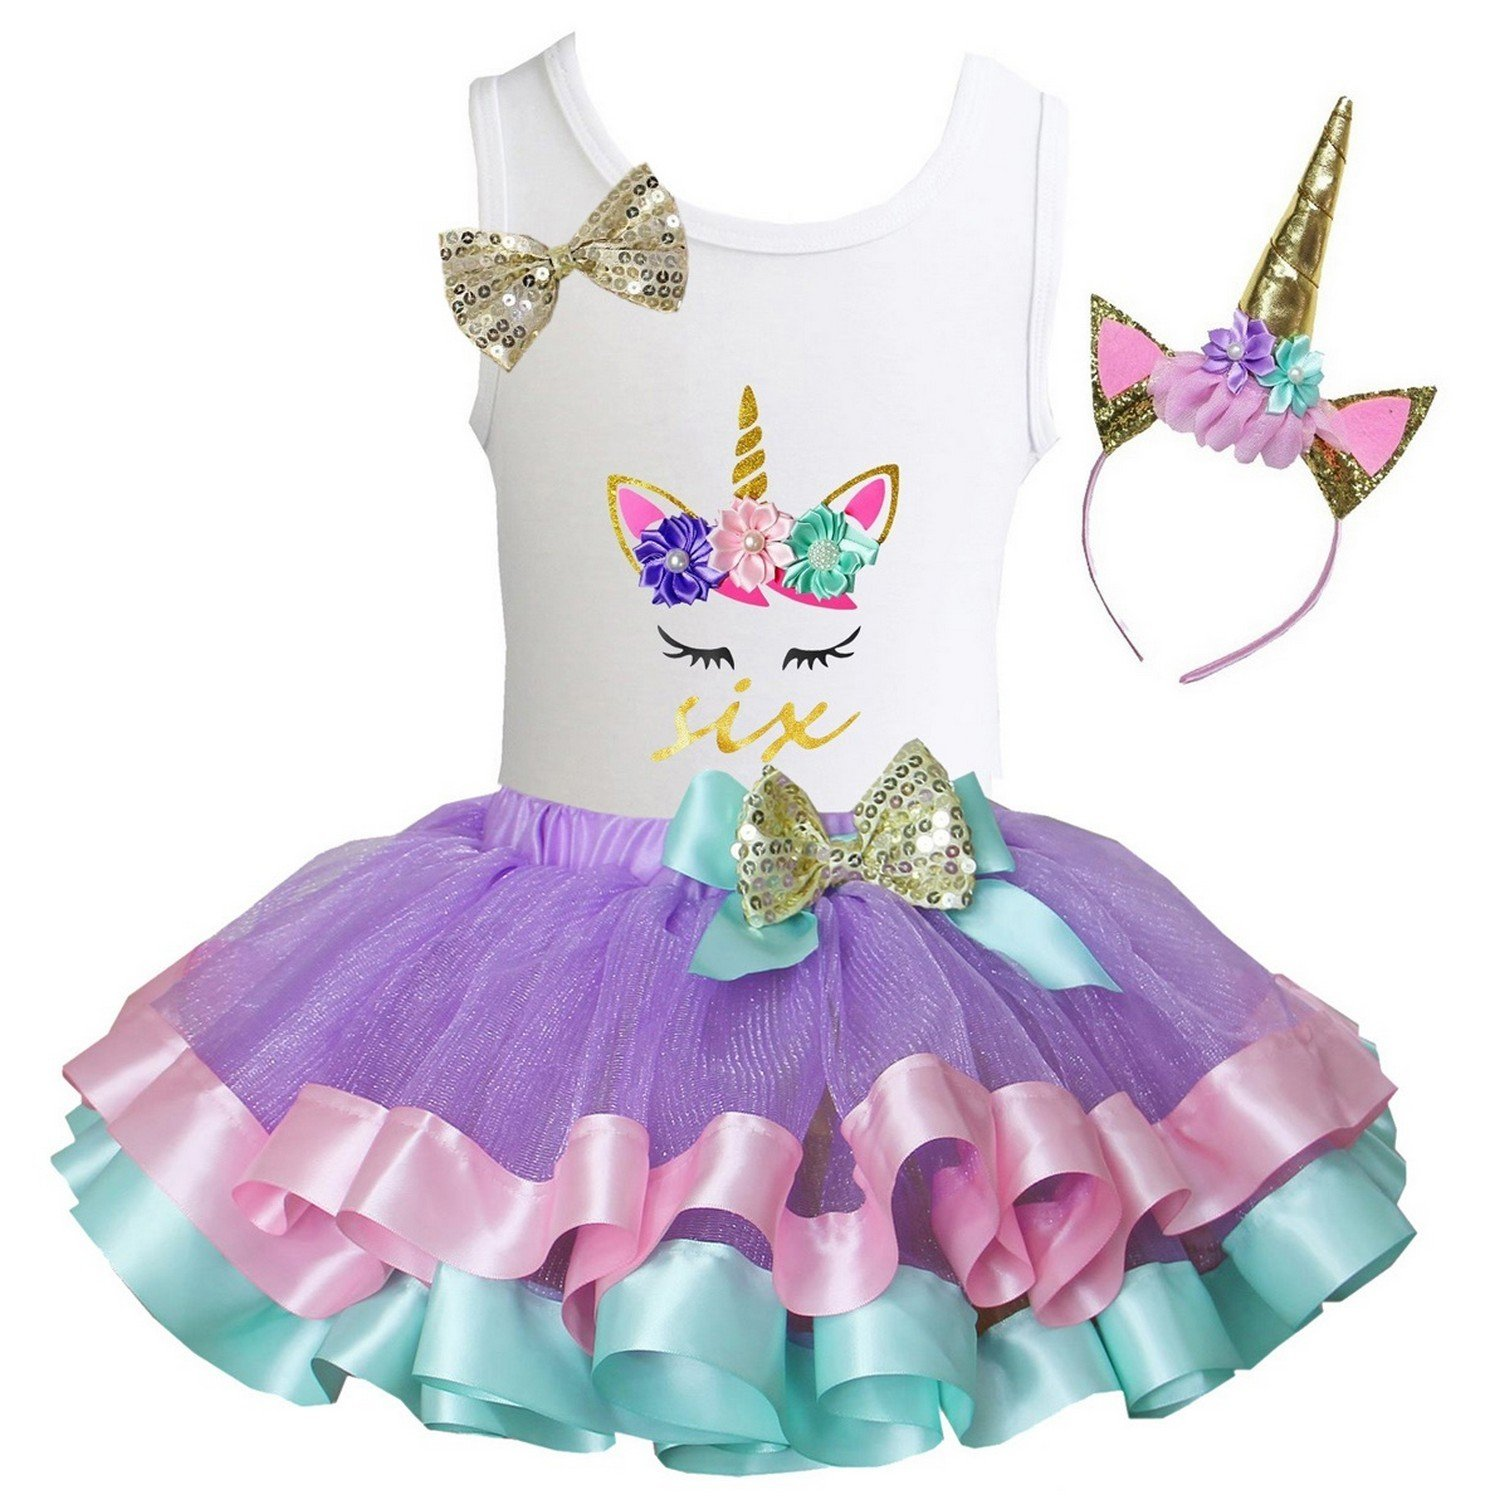 Kirei Sui Girls Lavender Pastel Satin Tutu Birthday Unicorn L Six